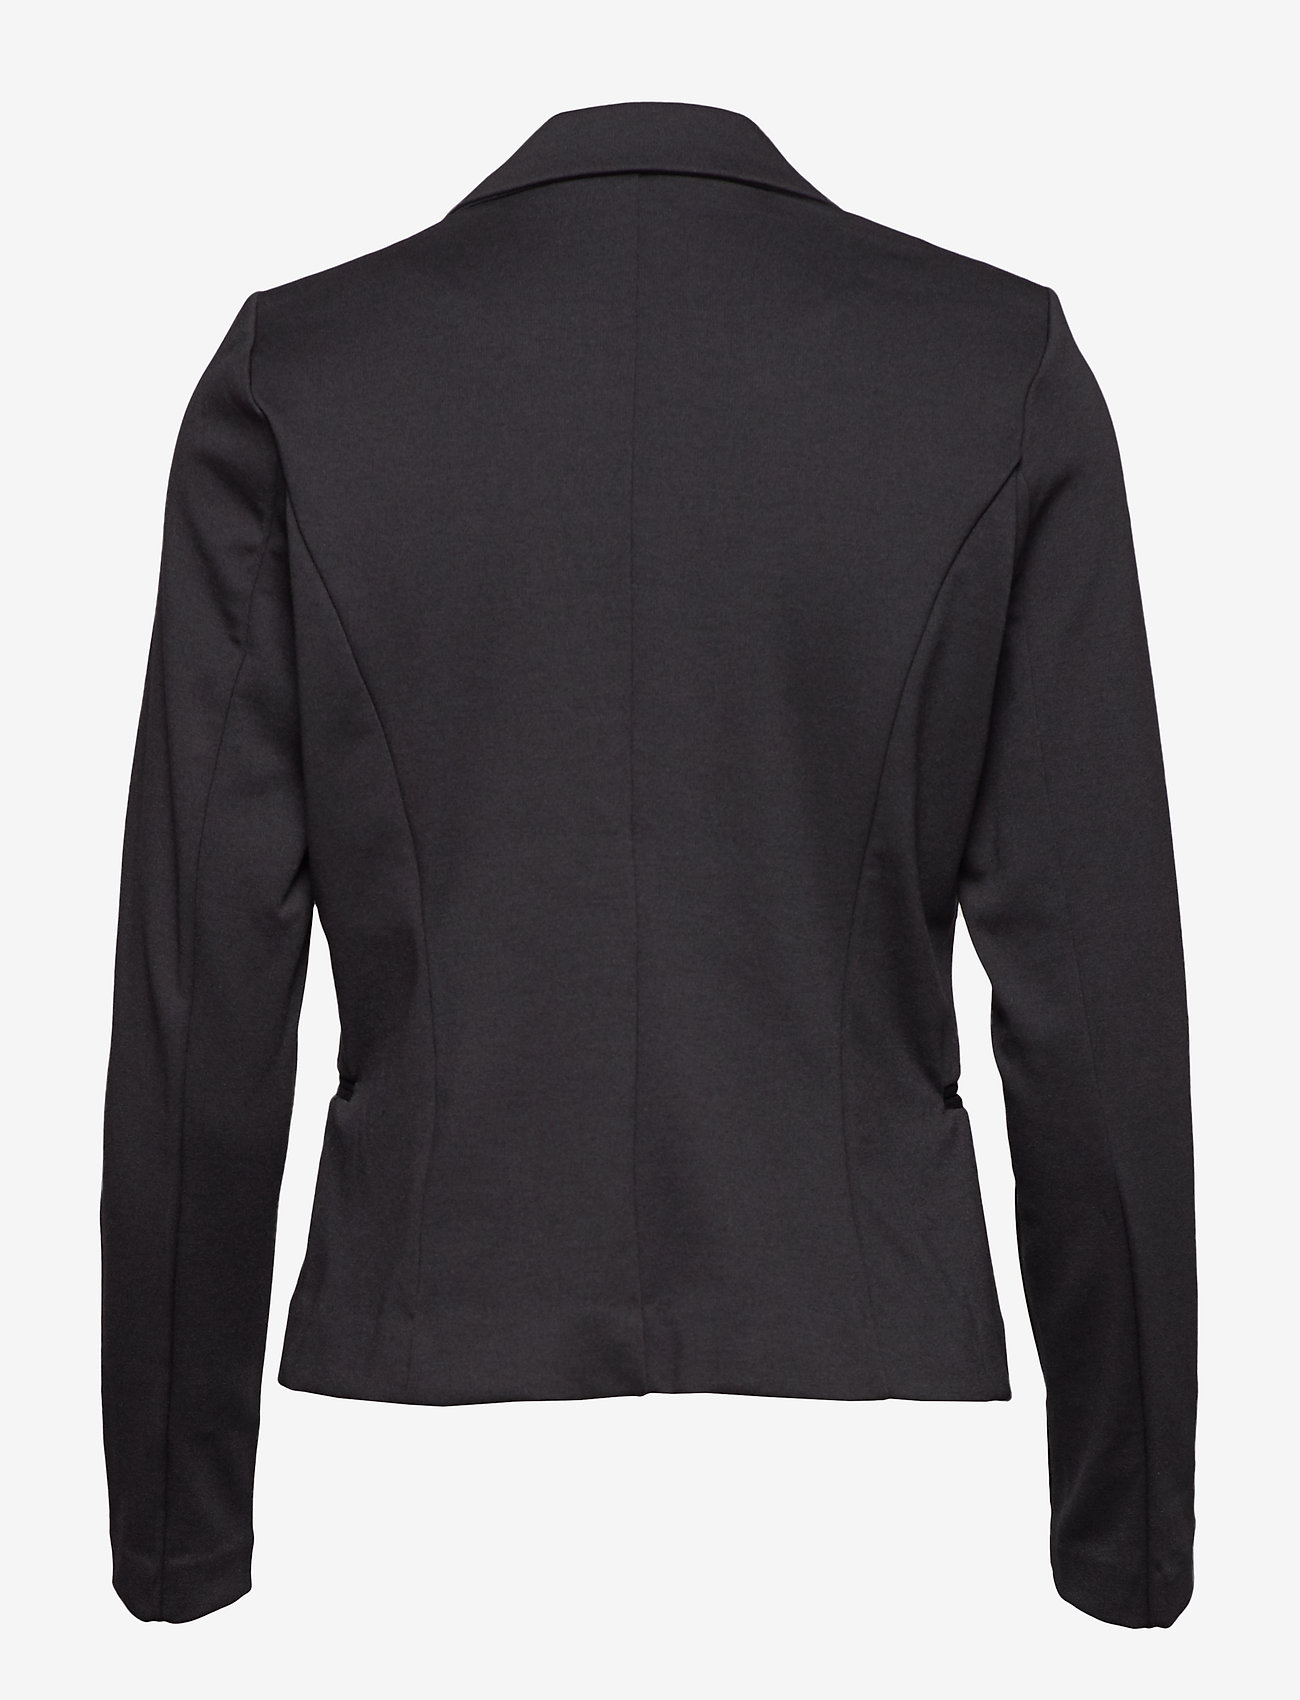 b.young - Rizetta blazer - - casual blazers - black - 1